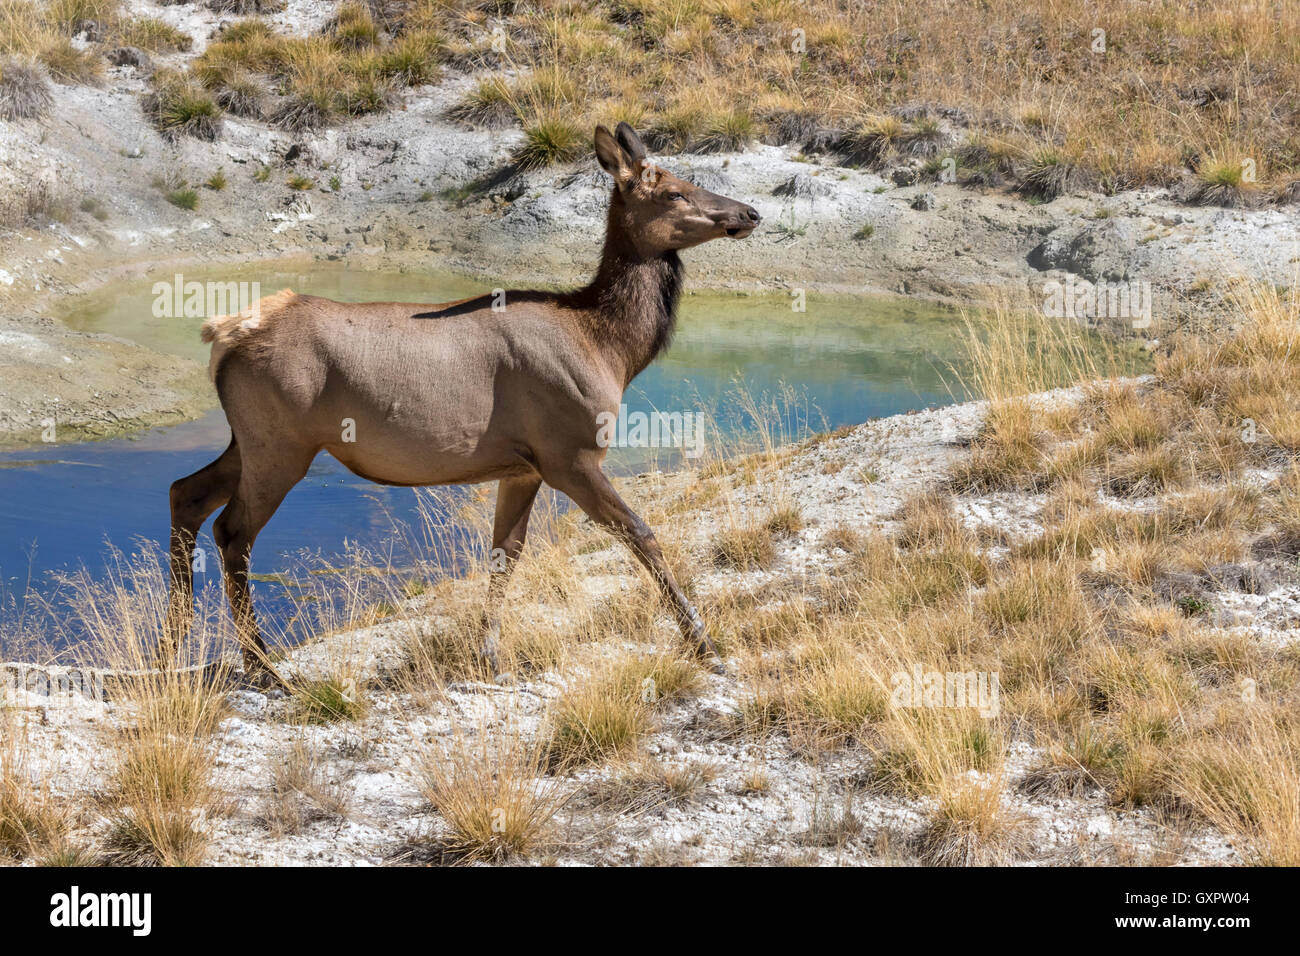 American elk (Cervus canadensis) female near a thermal spring, Yellowstone National Park, Wyoming, USA - Stock Image